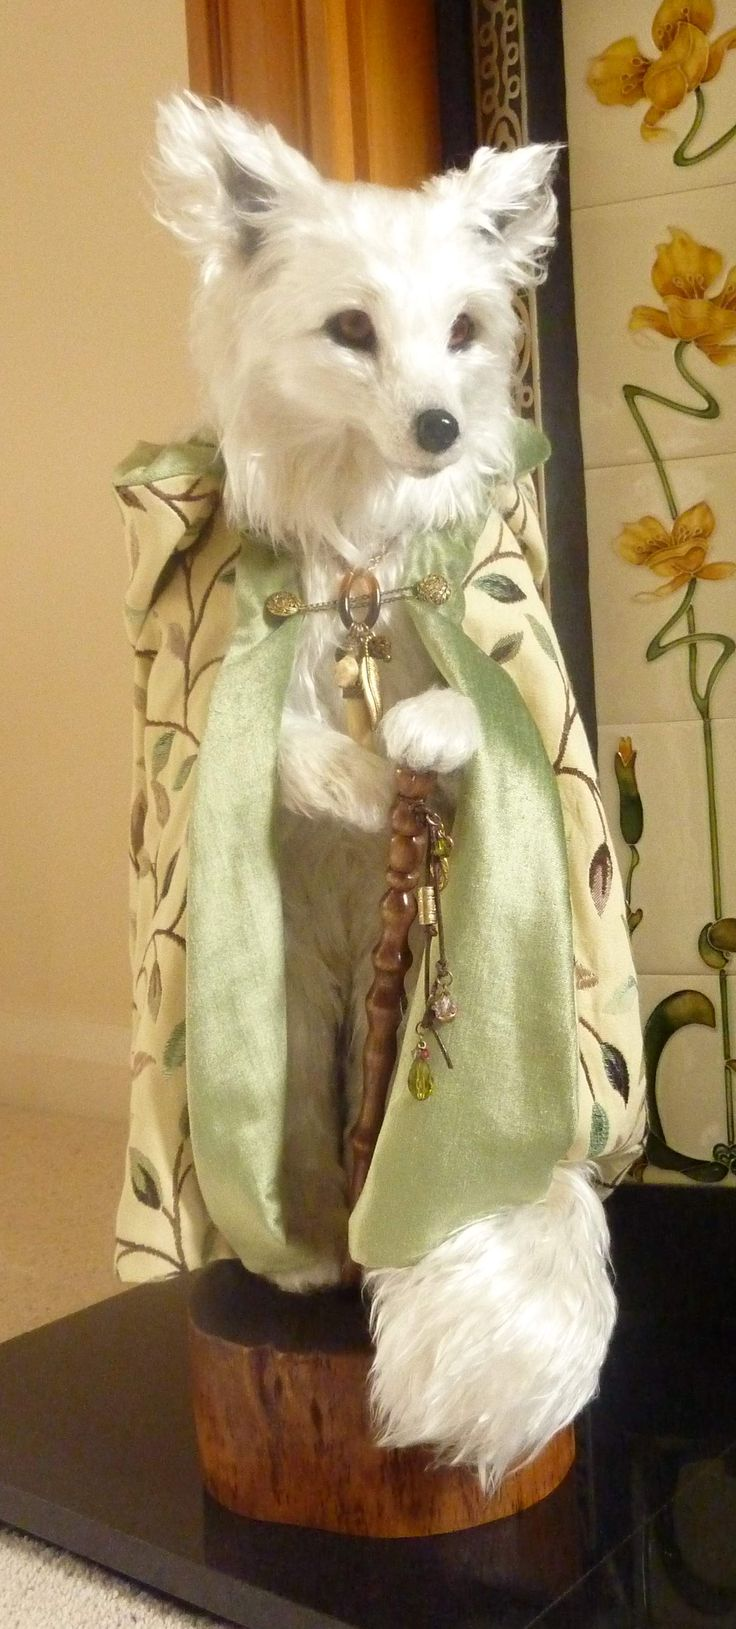 Needle felted wise and noble arctic fox   By Paula Drage of The Artful Fox. Dazzling!